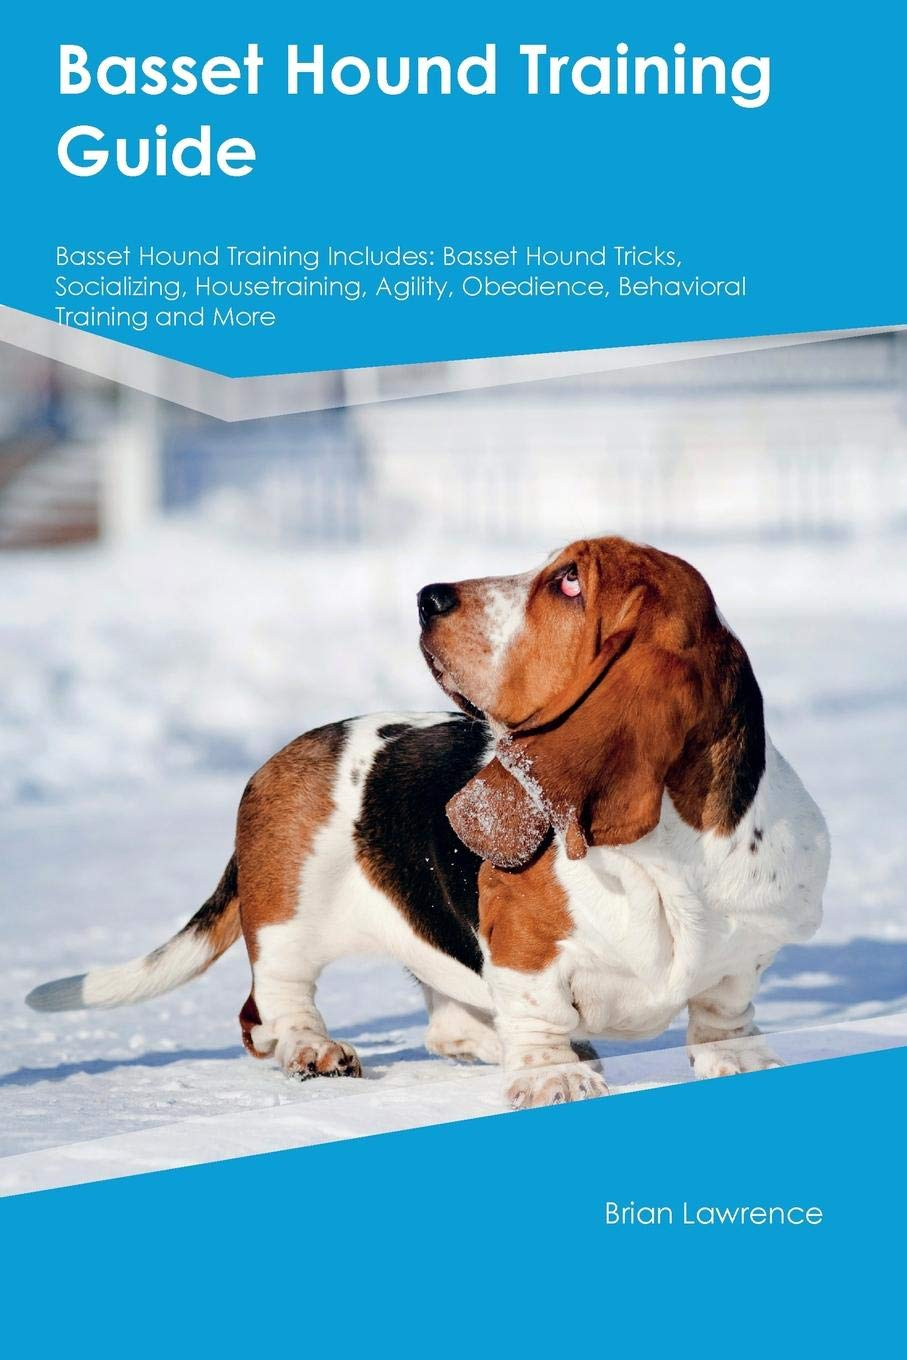 Basset Hound Training Guide Basset Hound Training Includes: Basset Hound Tricks, Socializing, Housetraining, Agility, Obedience, Behavioral Training and More